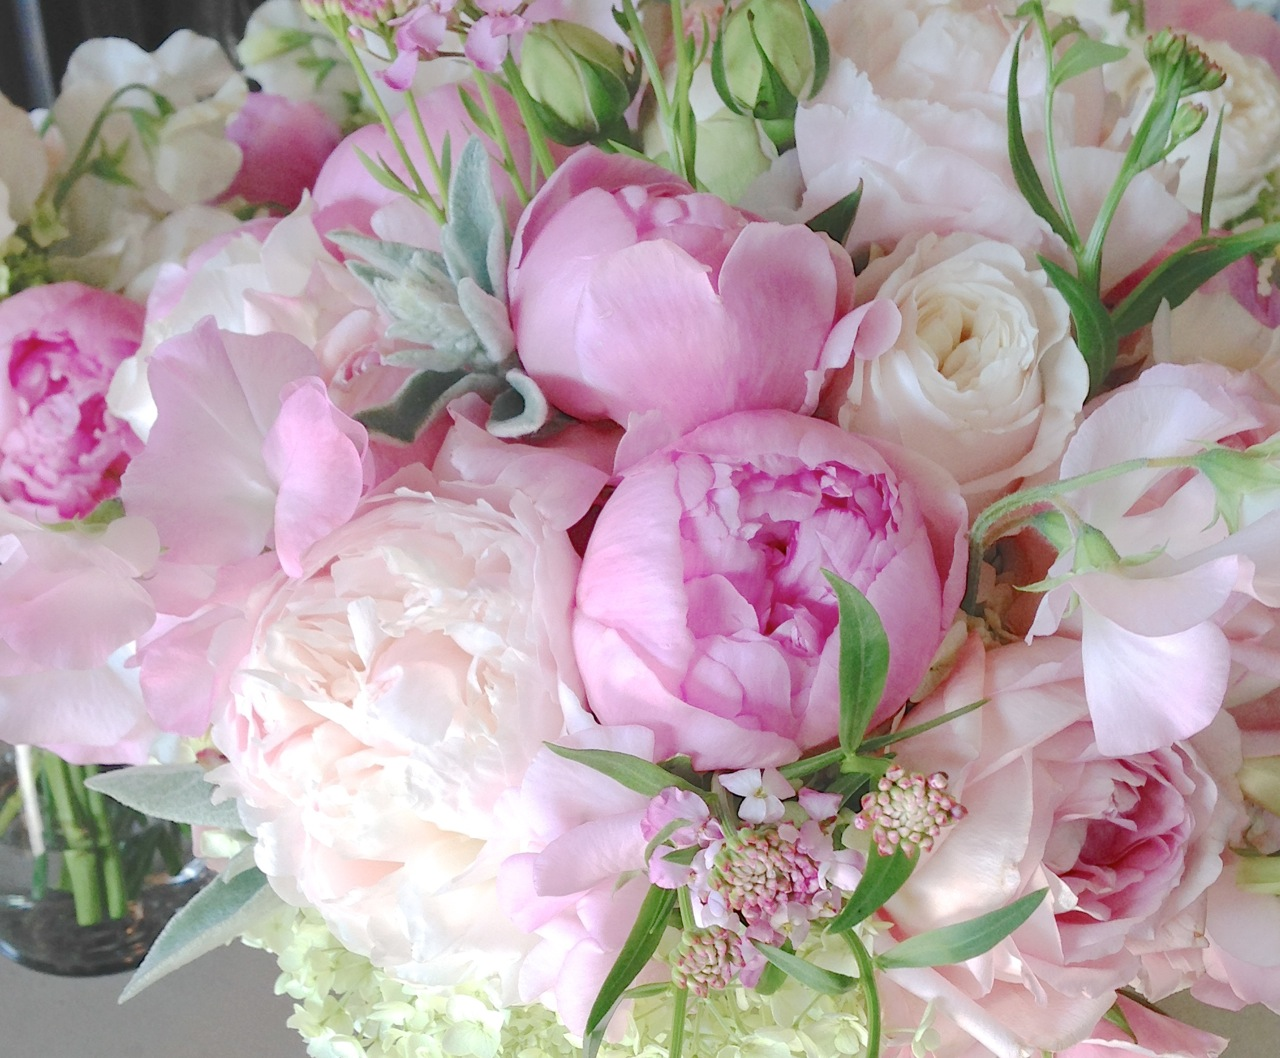 christopher flowers seattle bouquet pink blush peony garden rose sweet pea hydrangea green ivory local organic - Garden Rose And Peony Bouquet